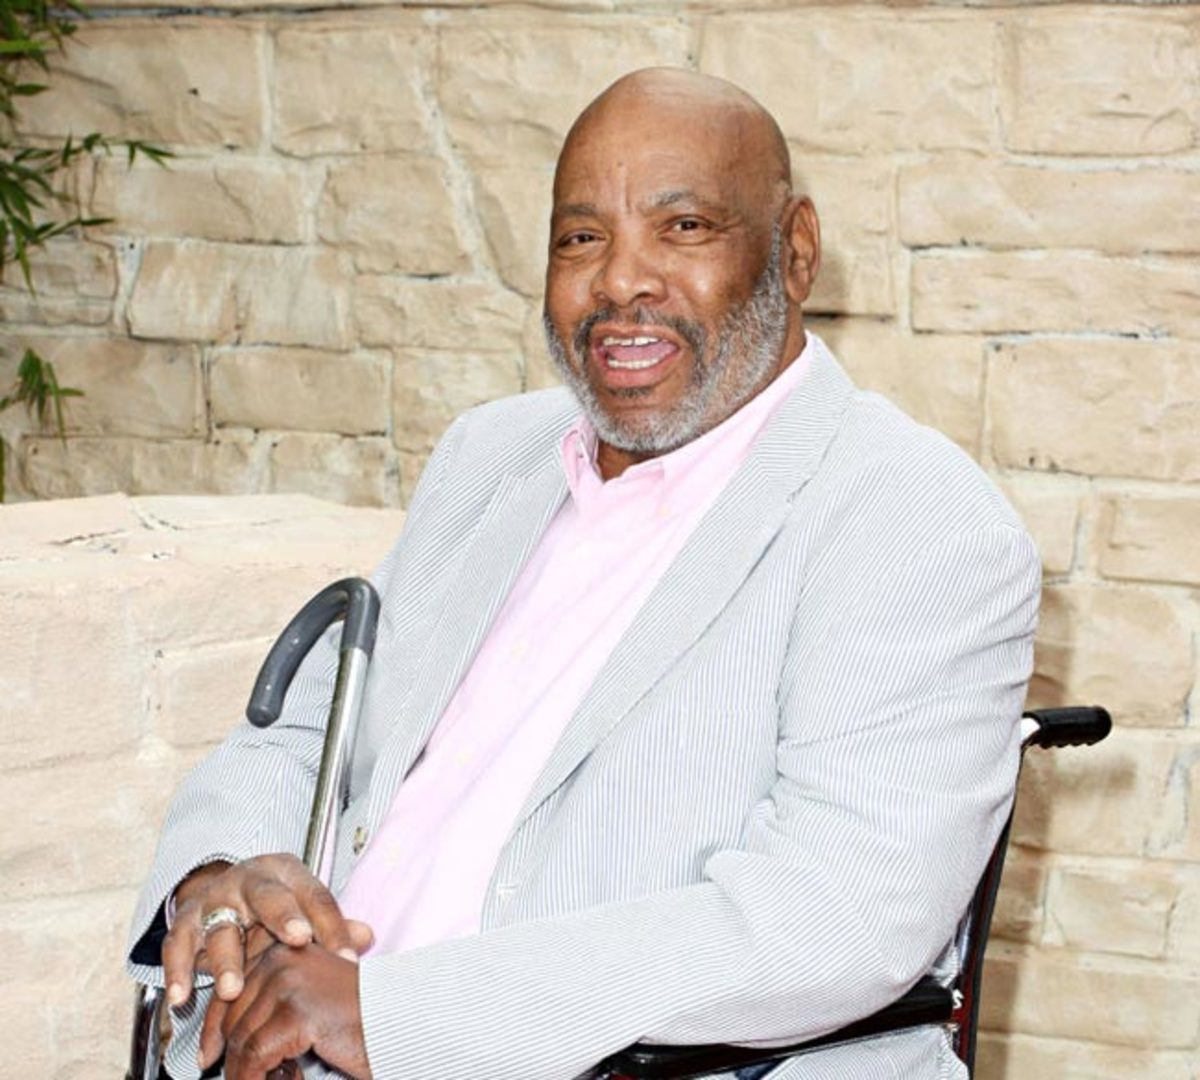 Avery before his death in 2013.  Rest in Peace, James Avery!